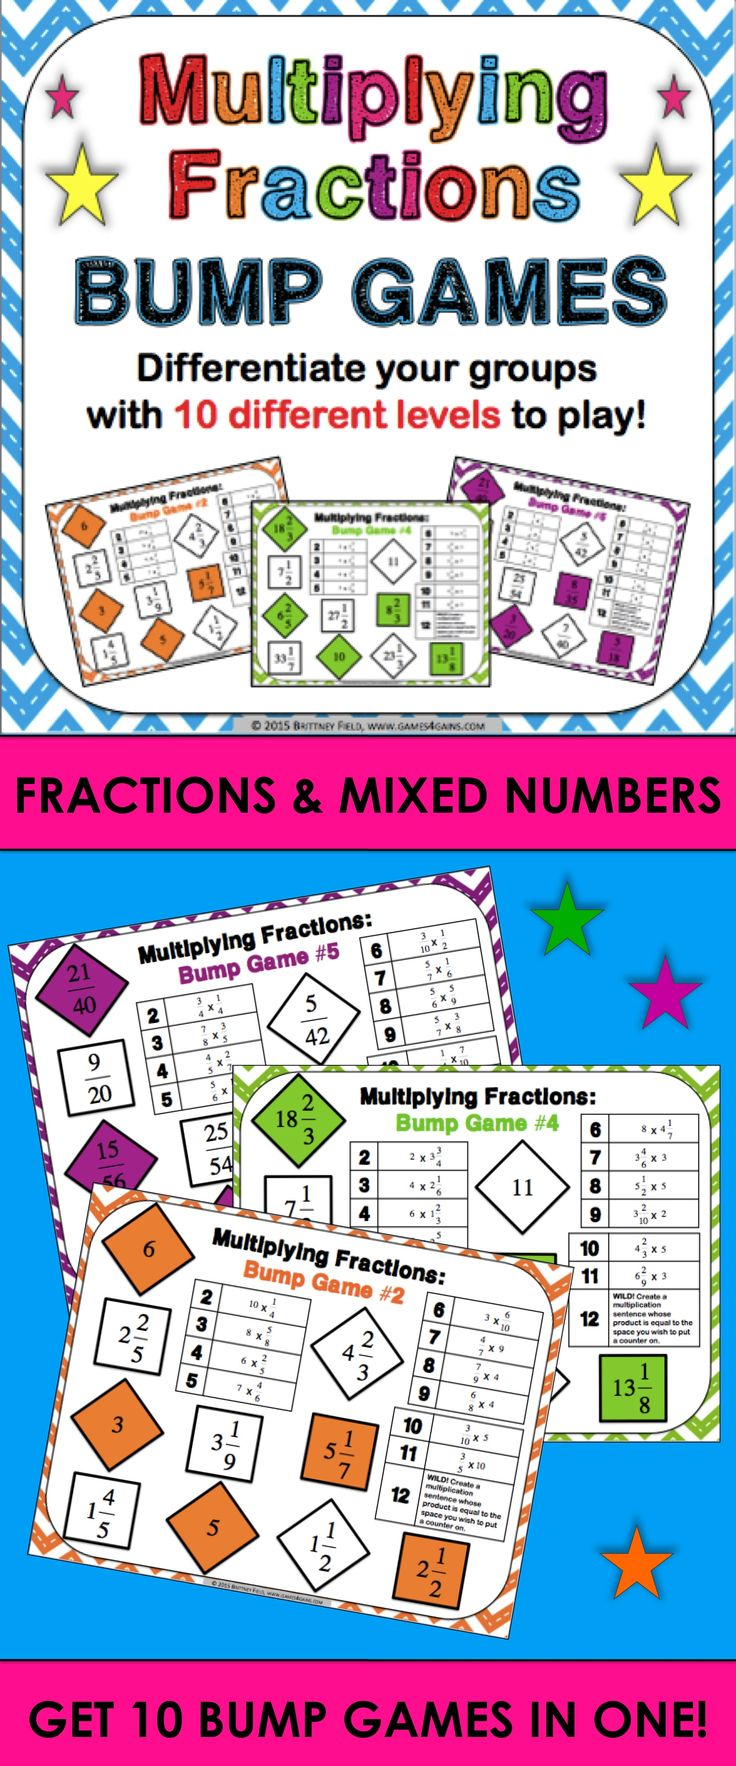 Multiplying Fractions Bump Games contains 10 different games to help students practice multiplying fractions and mixed numbers. As students work through the games, each one ramps up in difficulty. This means that you can have all of your students working at their appropriate level when using this set! These multiplying fractions bump games are perfect for small groups and centers, or can even be used as an informal assessment tool.